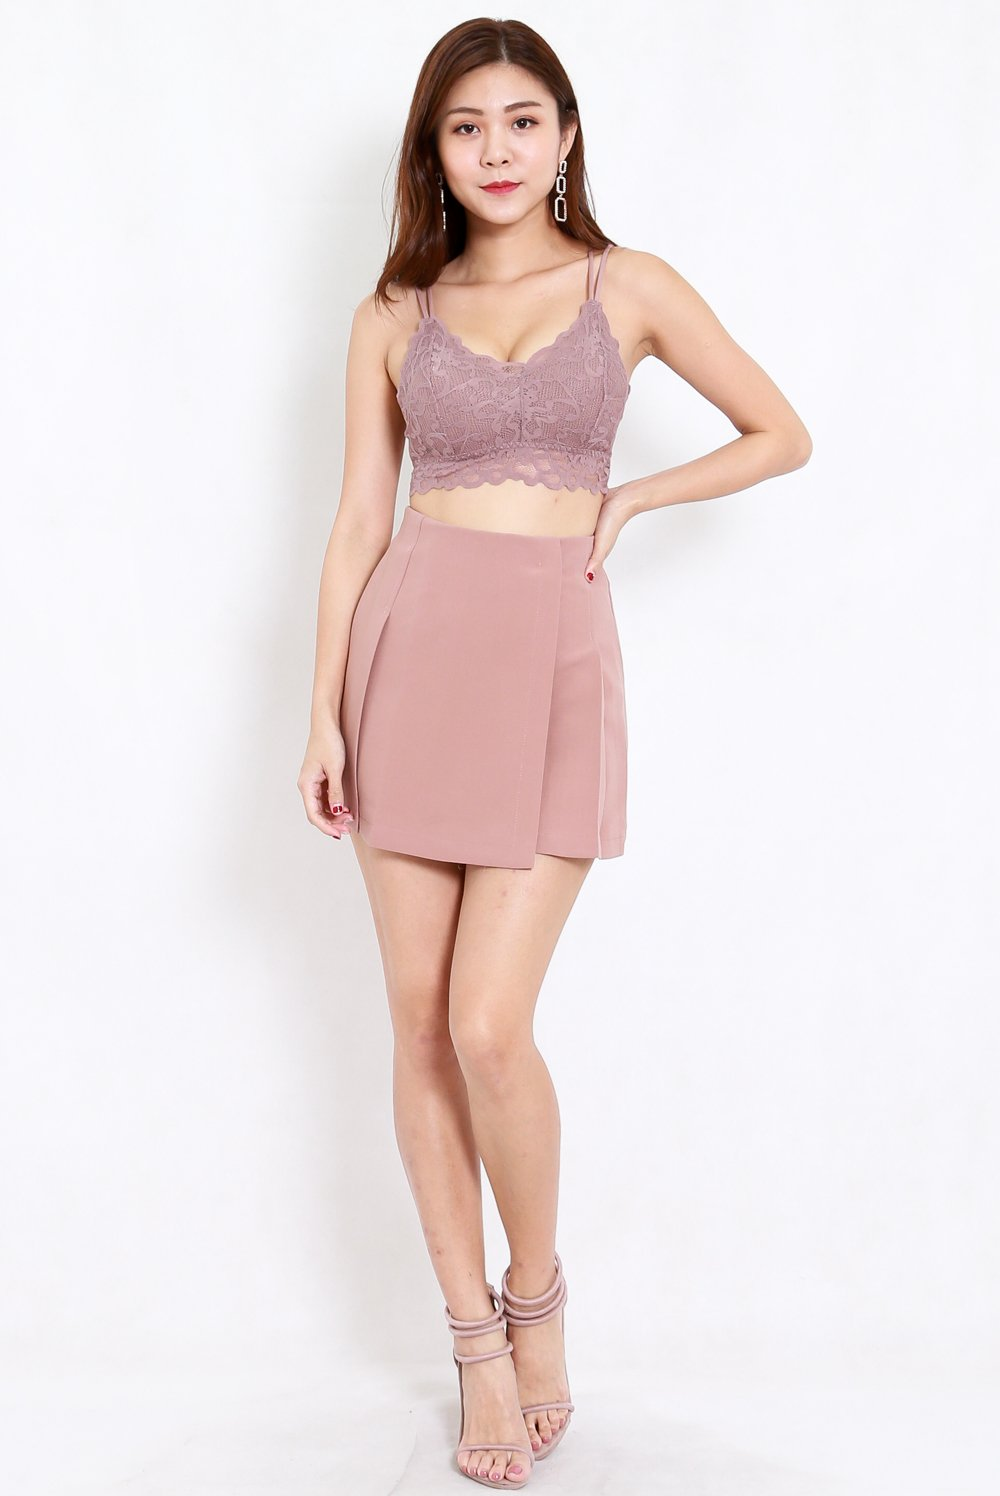 Rikka Lace Bralet (Mauve) *Push Up Effect*